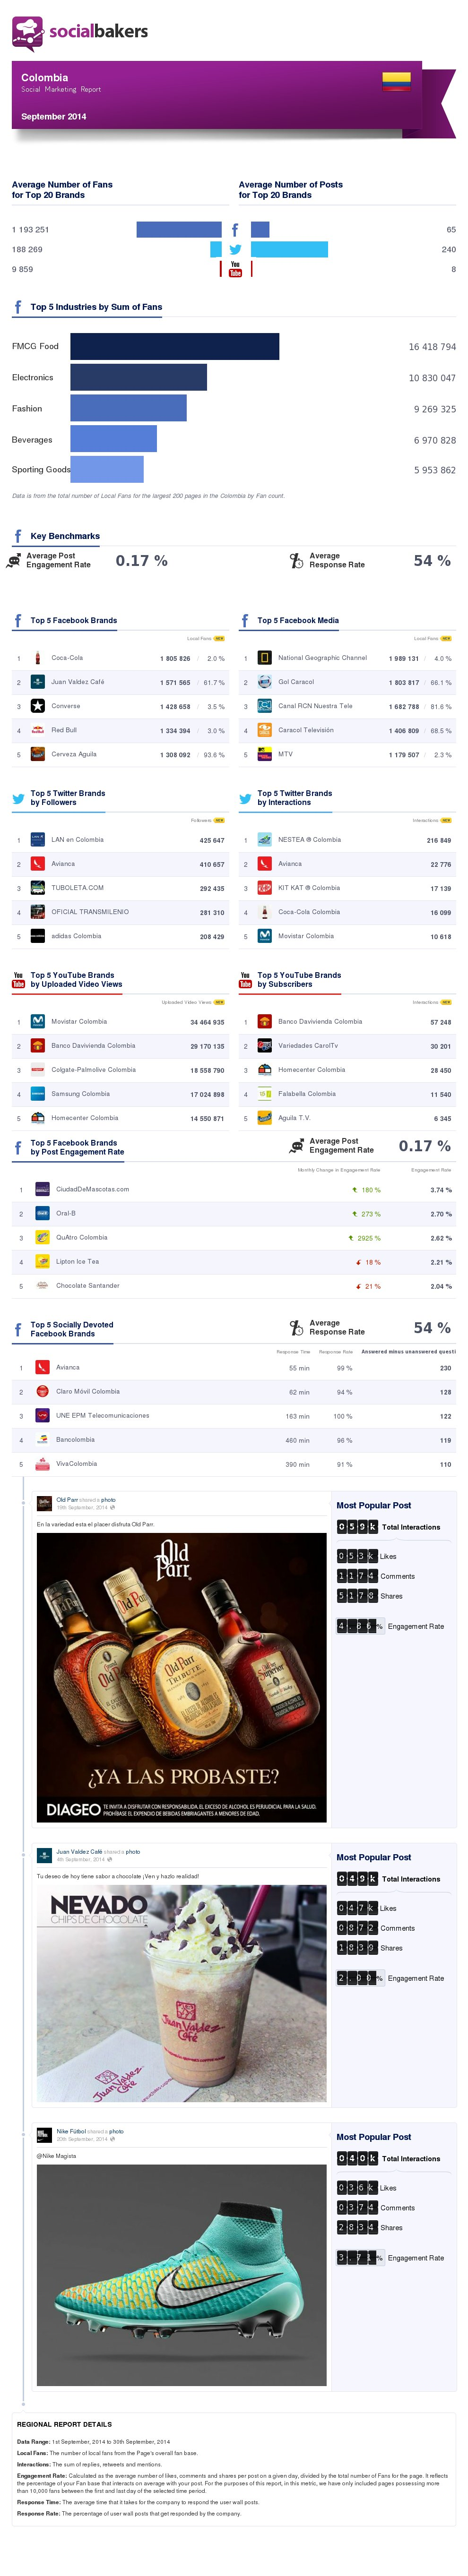 september-2014-social-marketing-report-colombia-regional-thumbnail